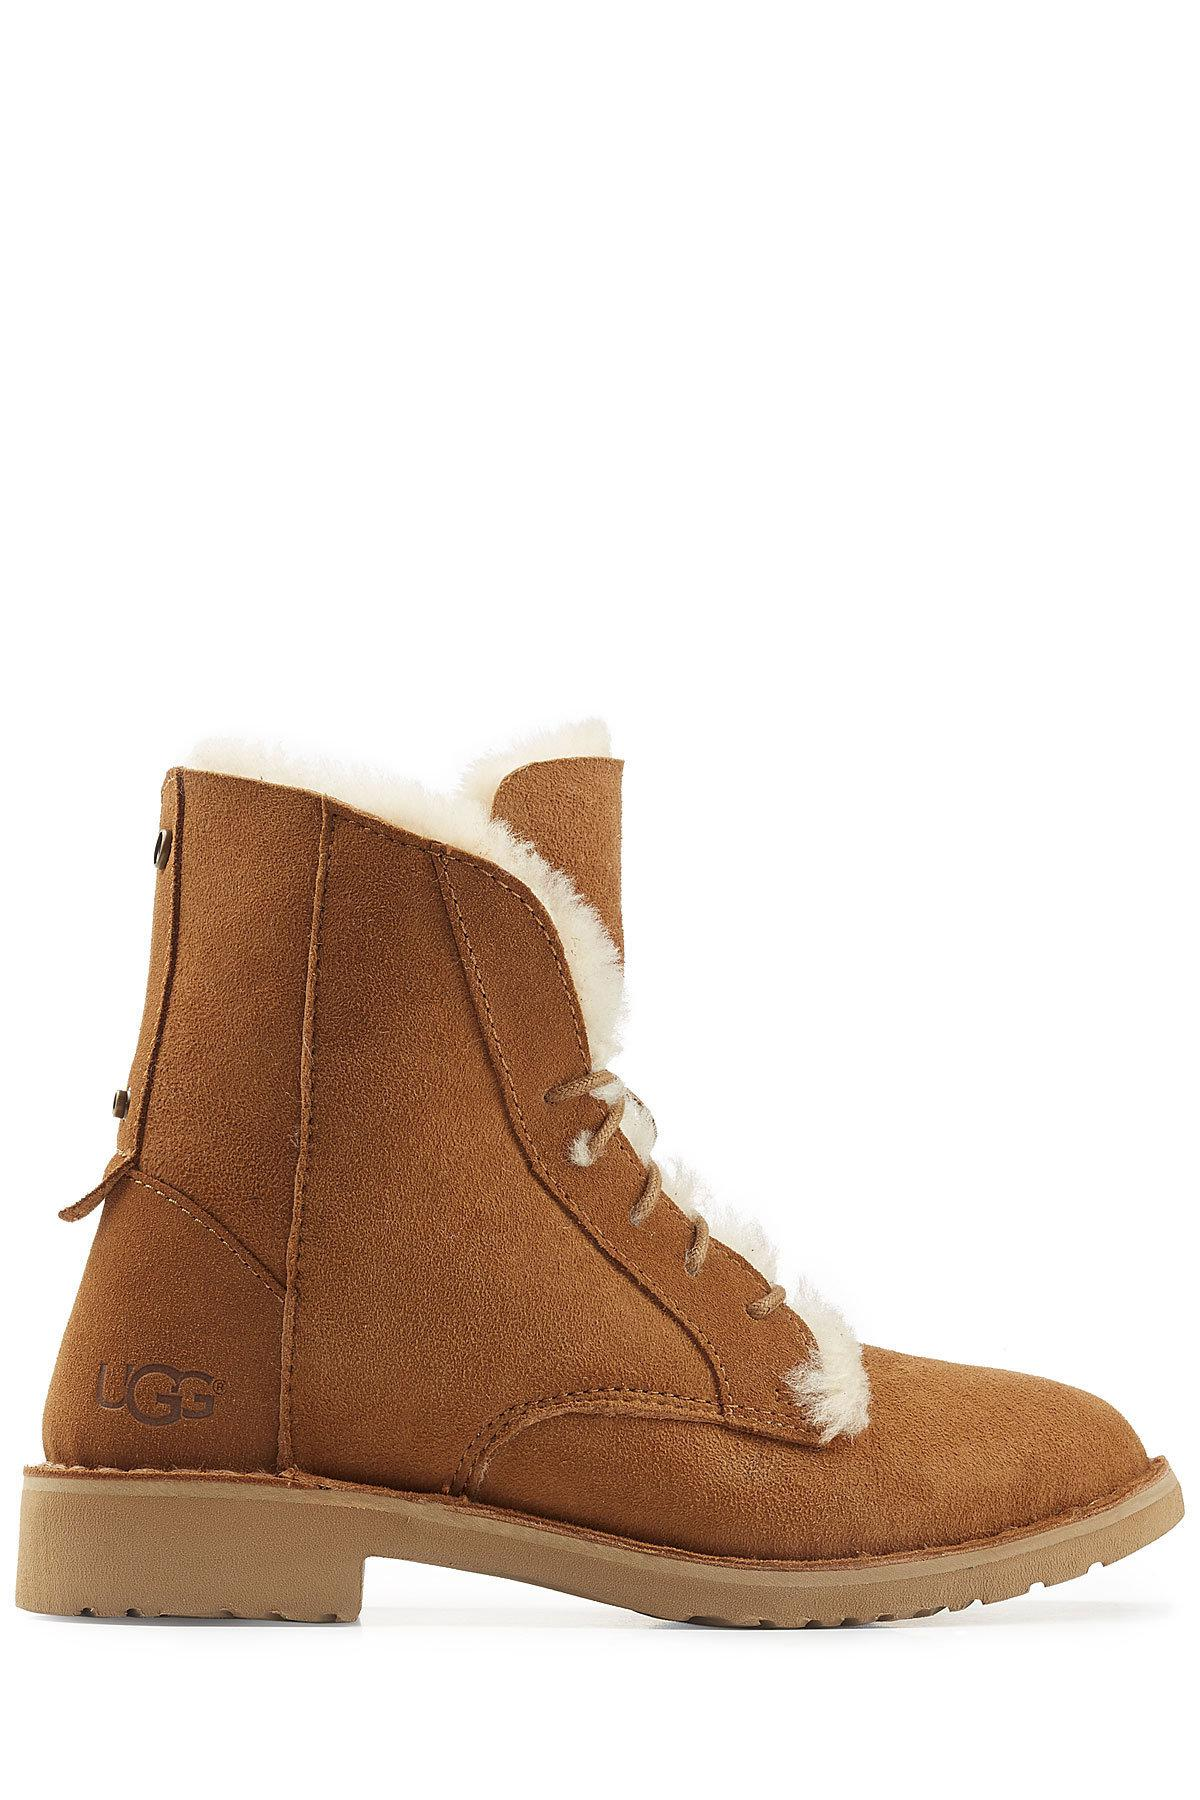 Ugg Suede Lace Up Boots With Searling Lining In Brown Lyst